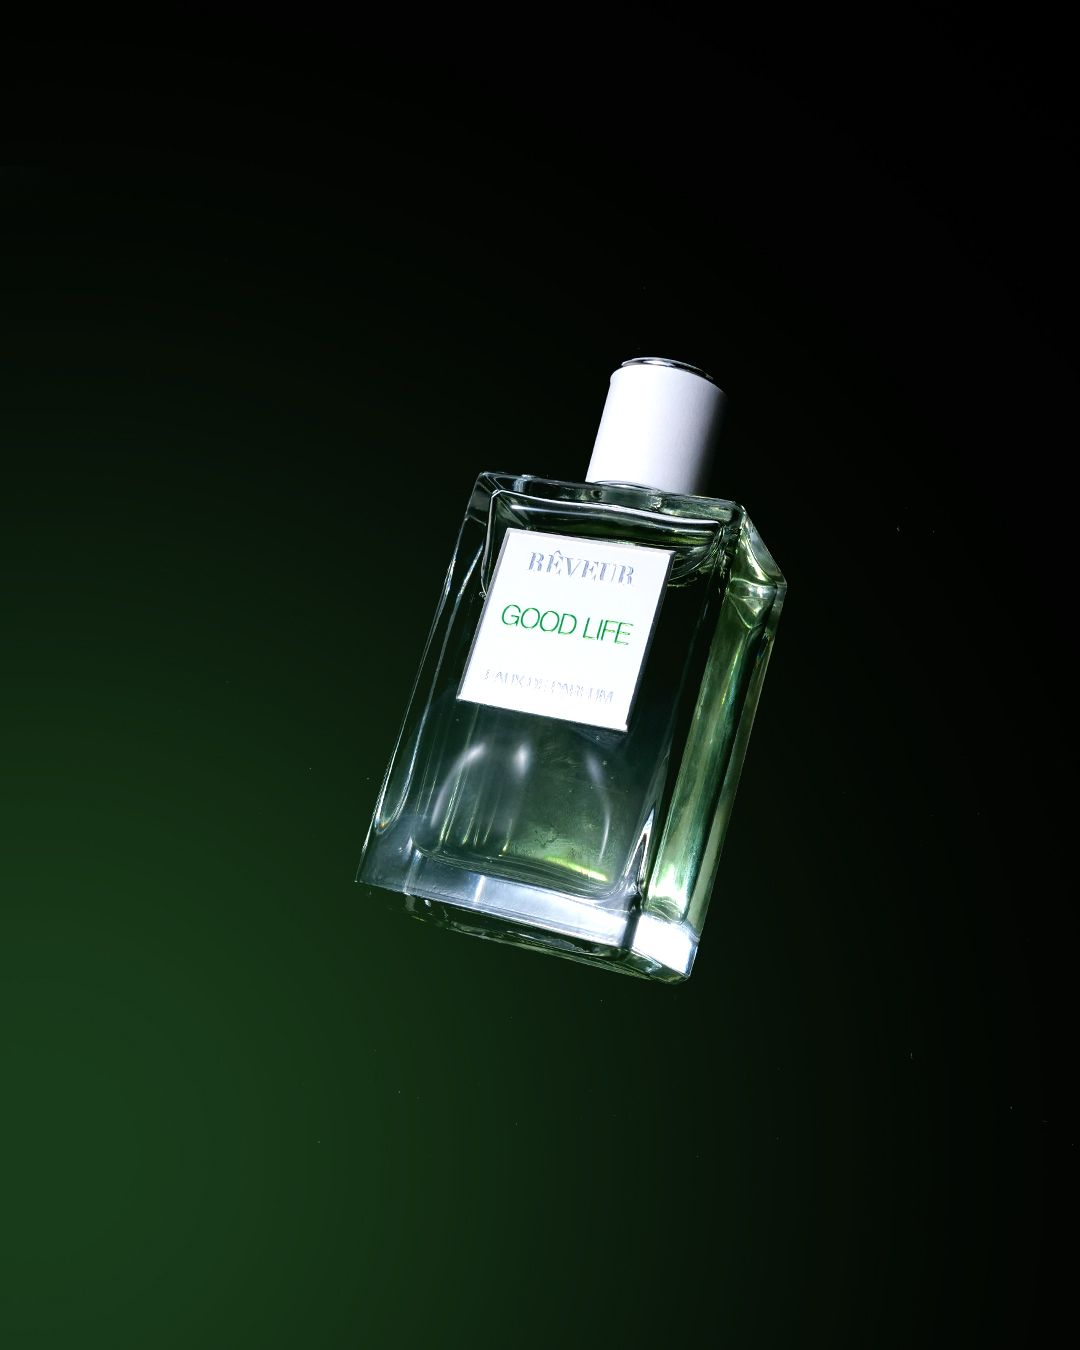 Vibrat Clean And Fresh The New Fragrance For Men By Reveur Fine